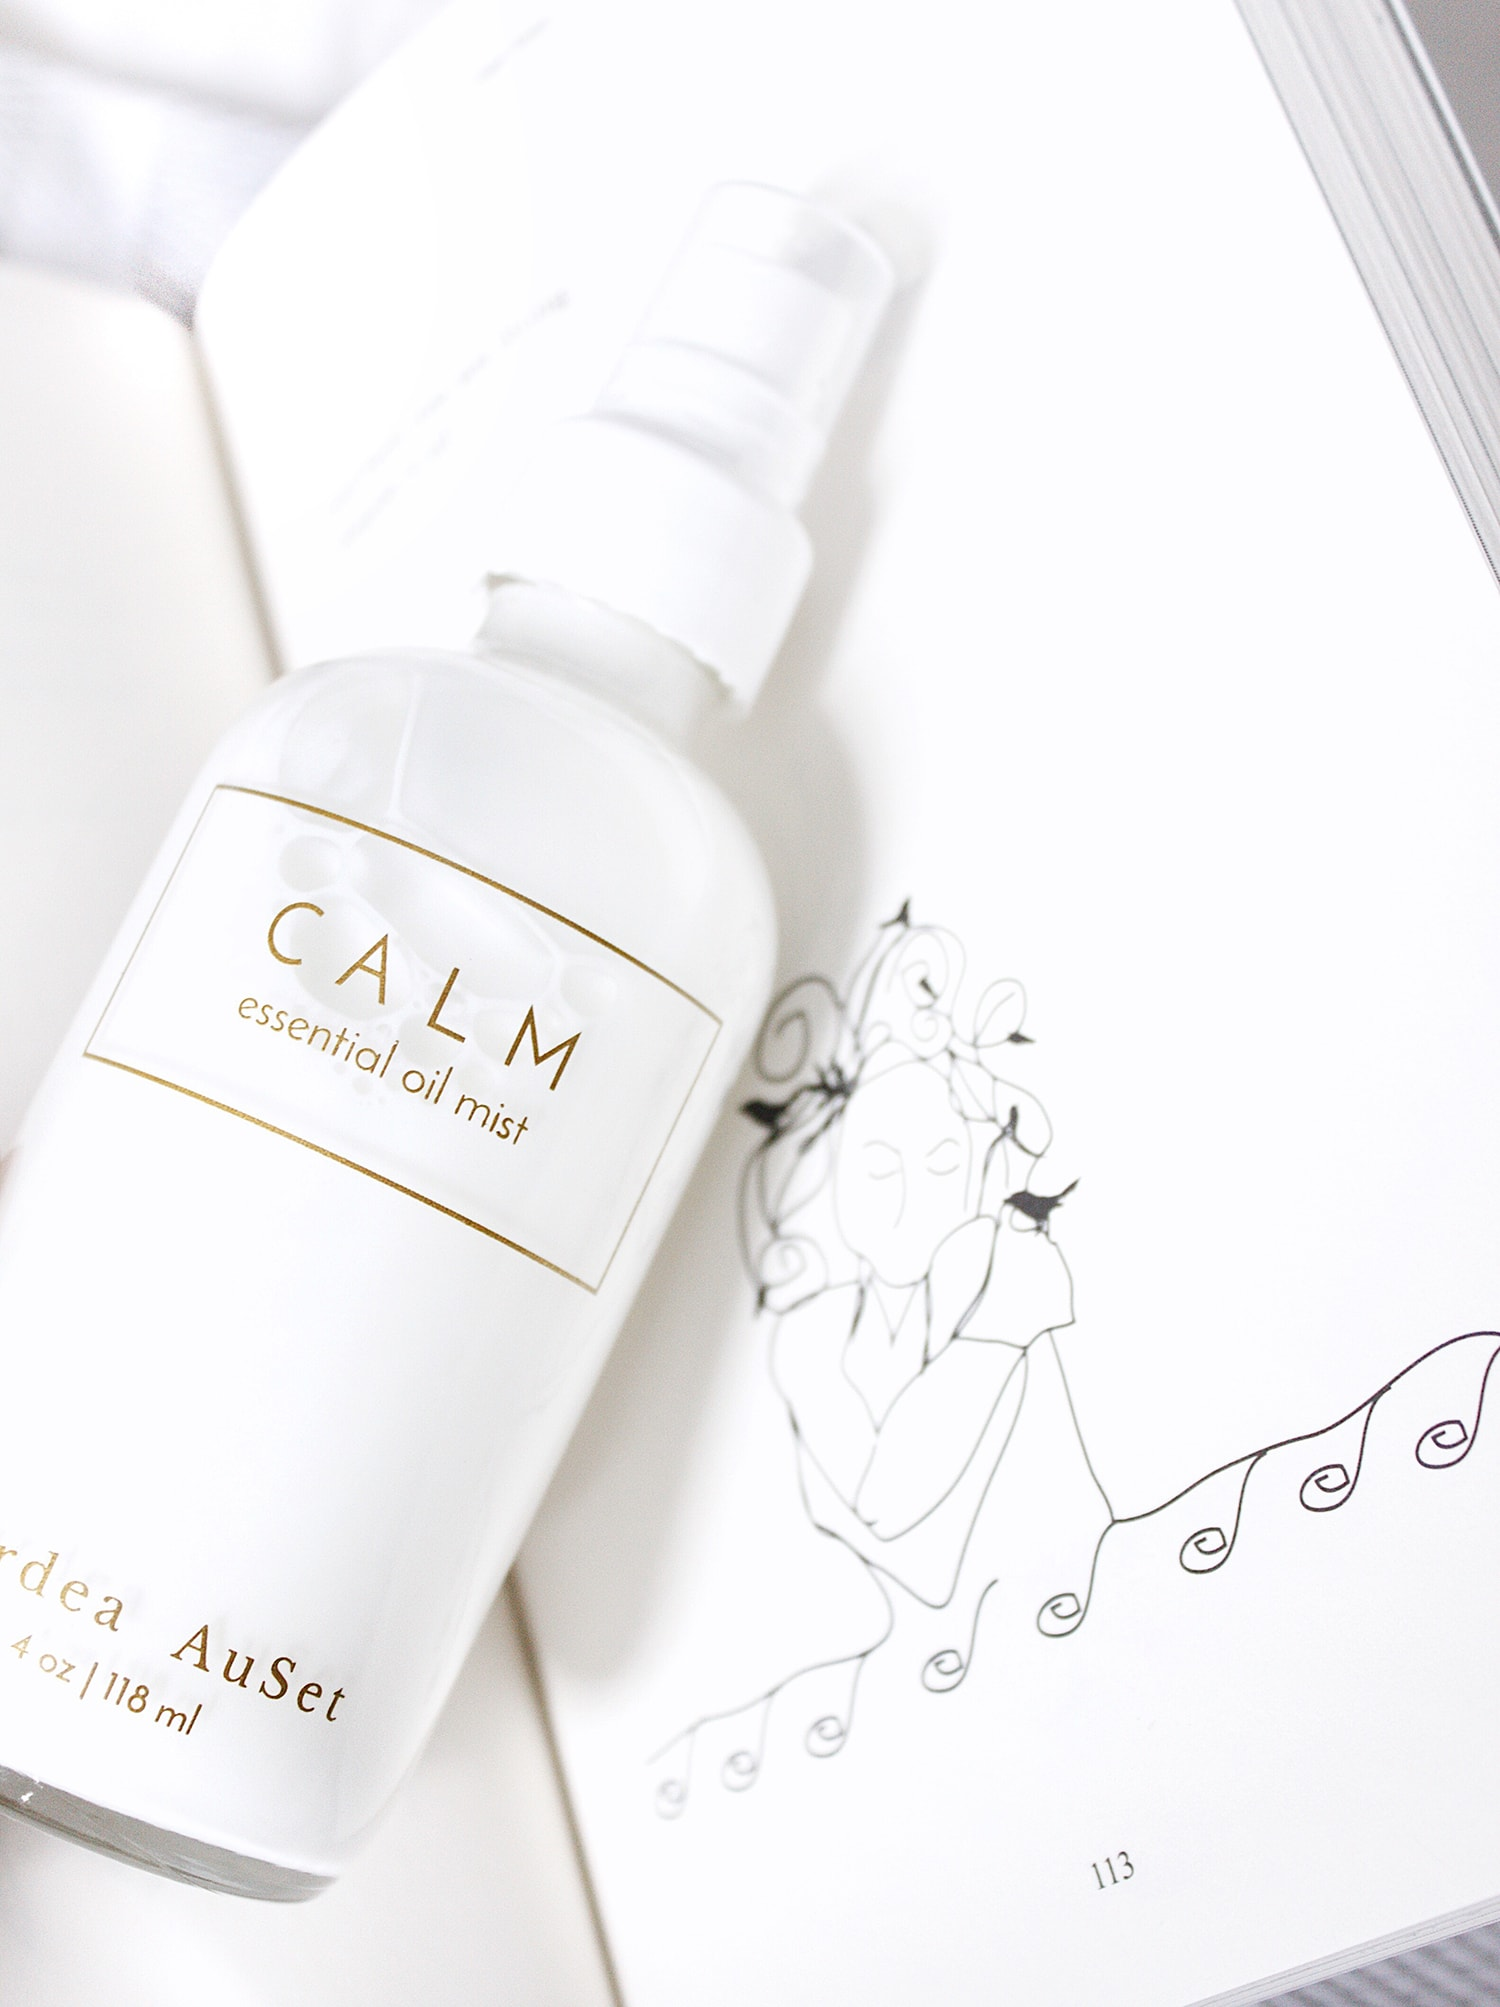 cardea auset CALM essential oil mist